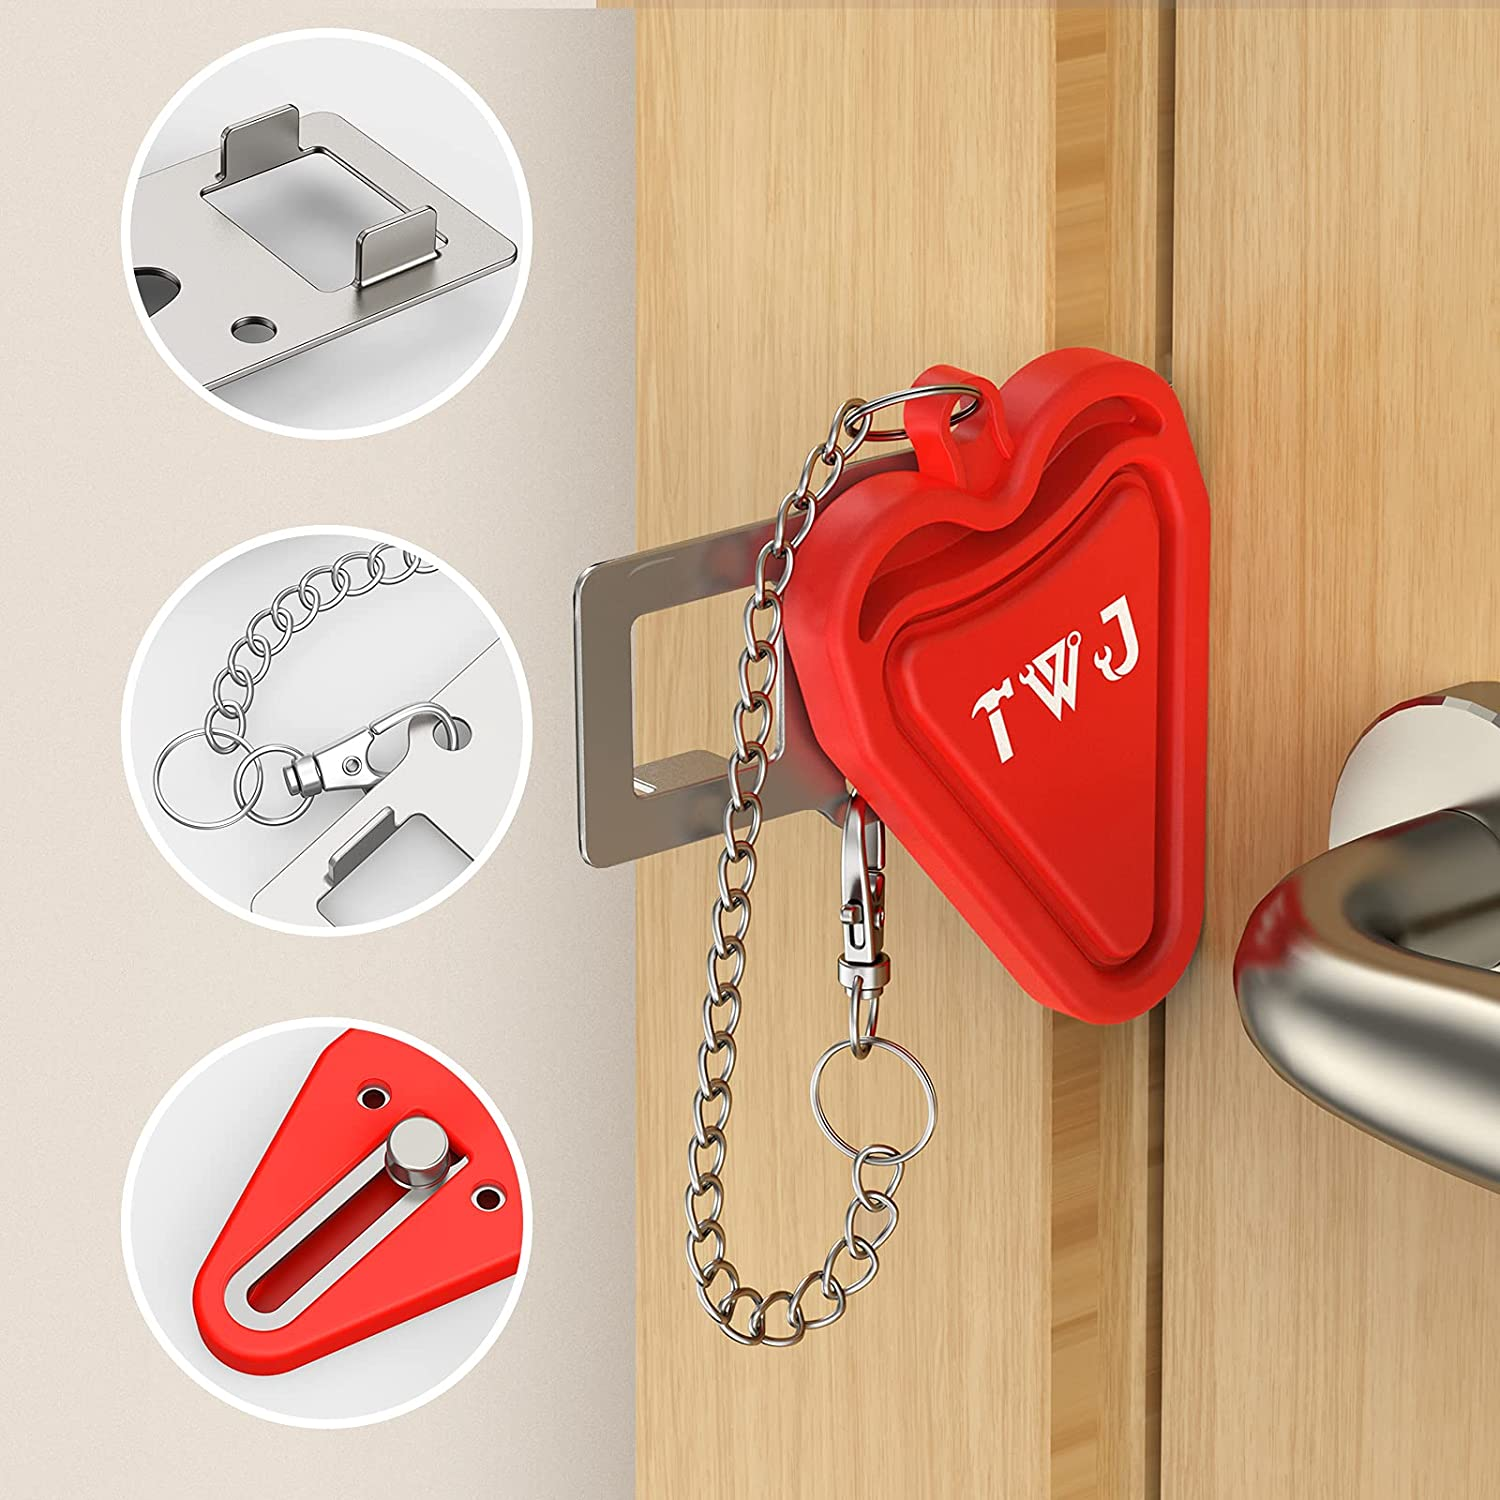 Security Portable Door Lock Latch, TWJ Upgrade 2 Holes Removable Door Latch Lock for Travel Safety and Personal Protection - No Drill Manual Lock Door Jammer Home Hotel Room Devices for Add Security